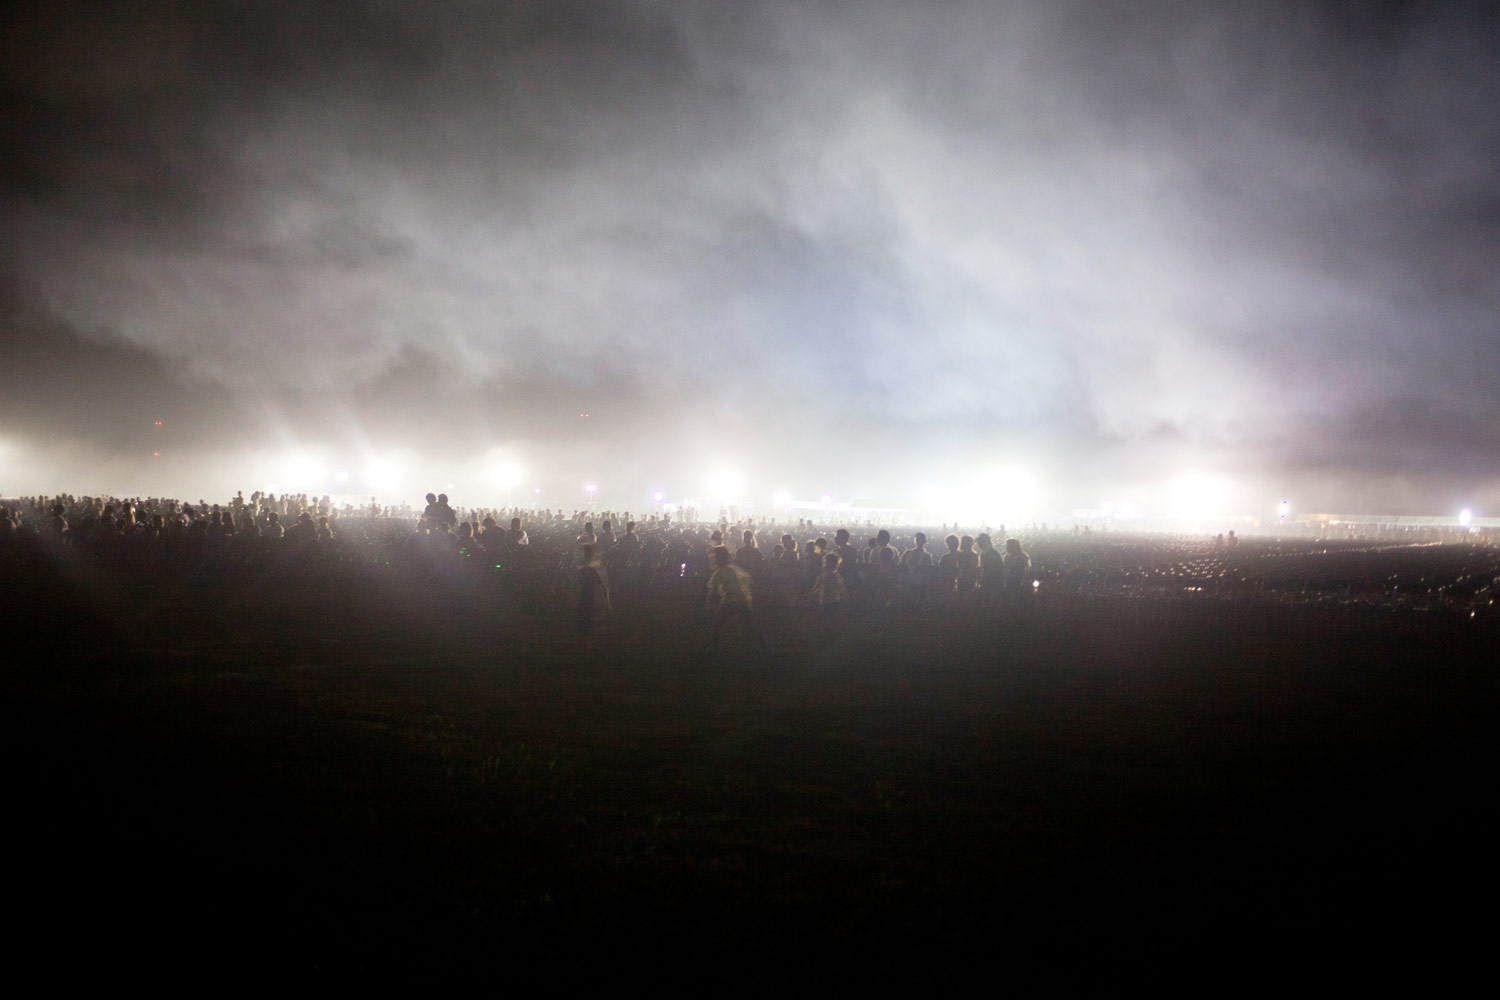 A crowd gathers for a fireworks display in Soma, August 13, 2011.